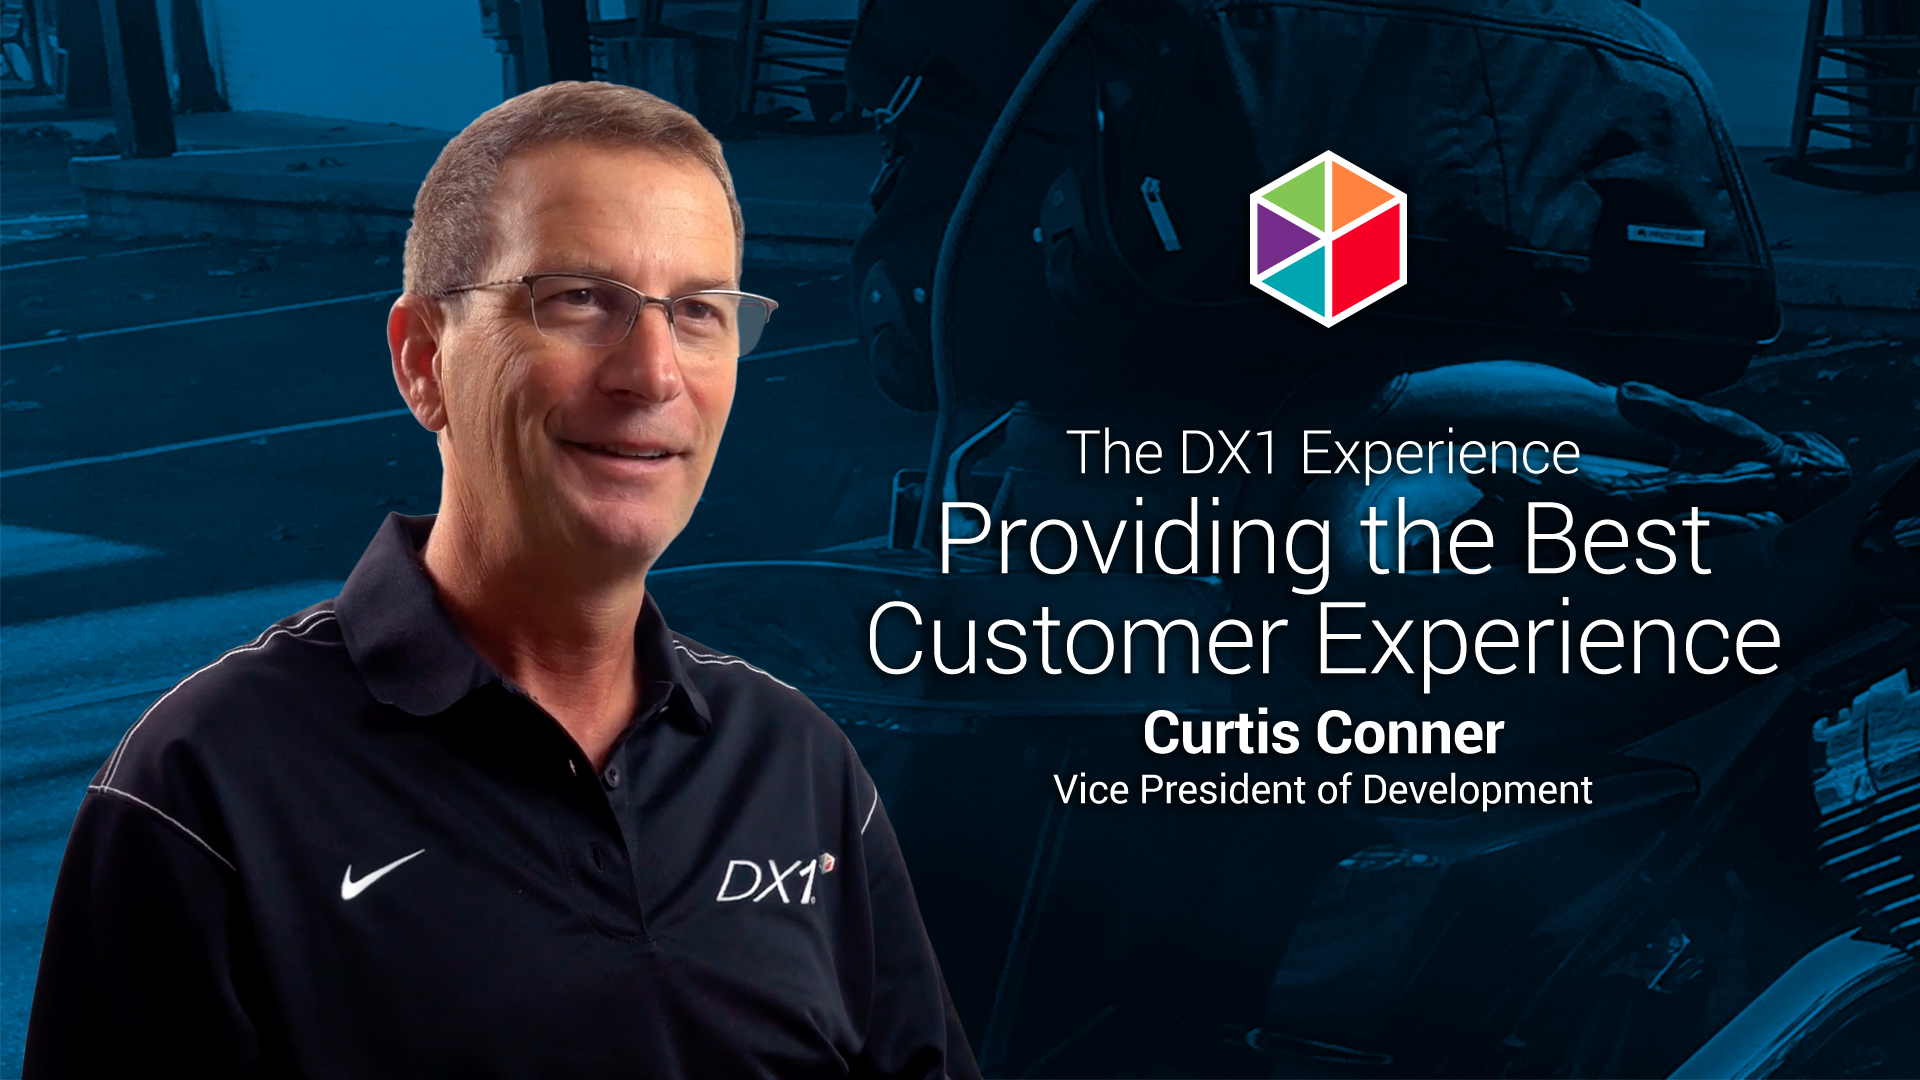 The DX1 Experience: Providing the Best Customer Experience